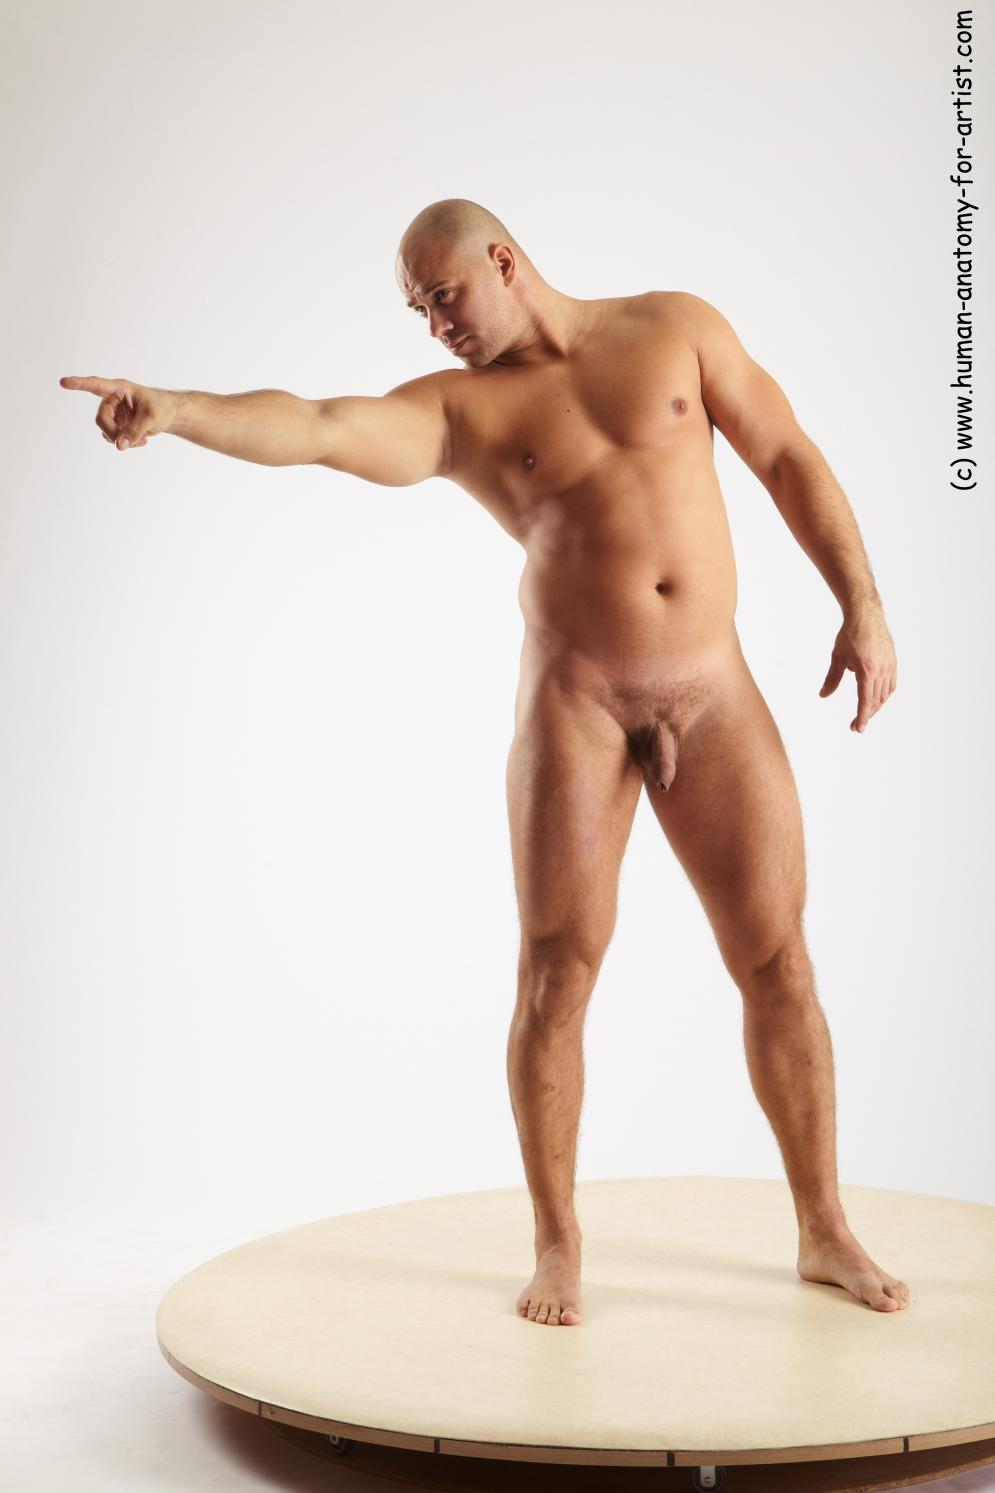 Image from Male sitting poses - ervin_standing_02.jpg